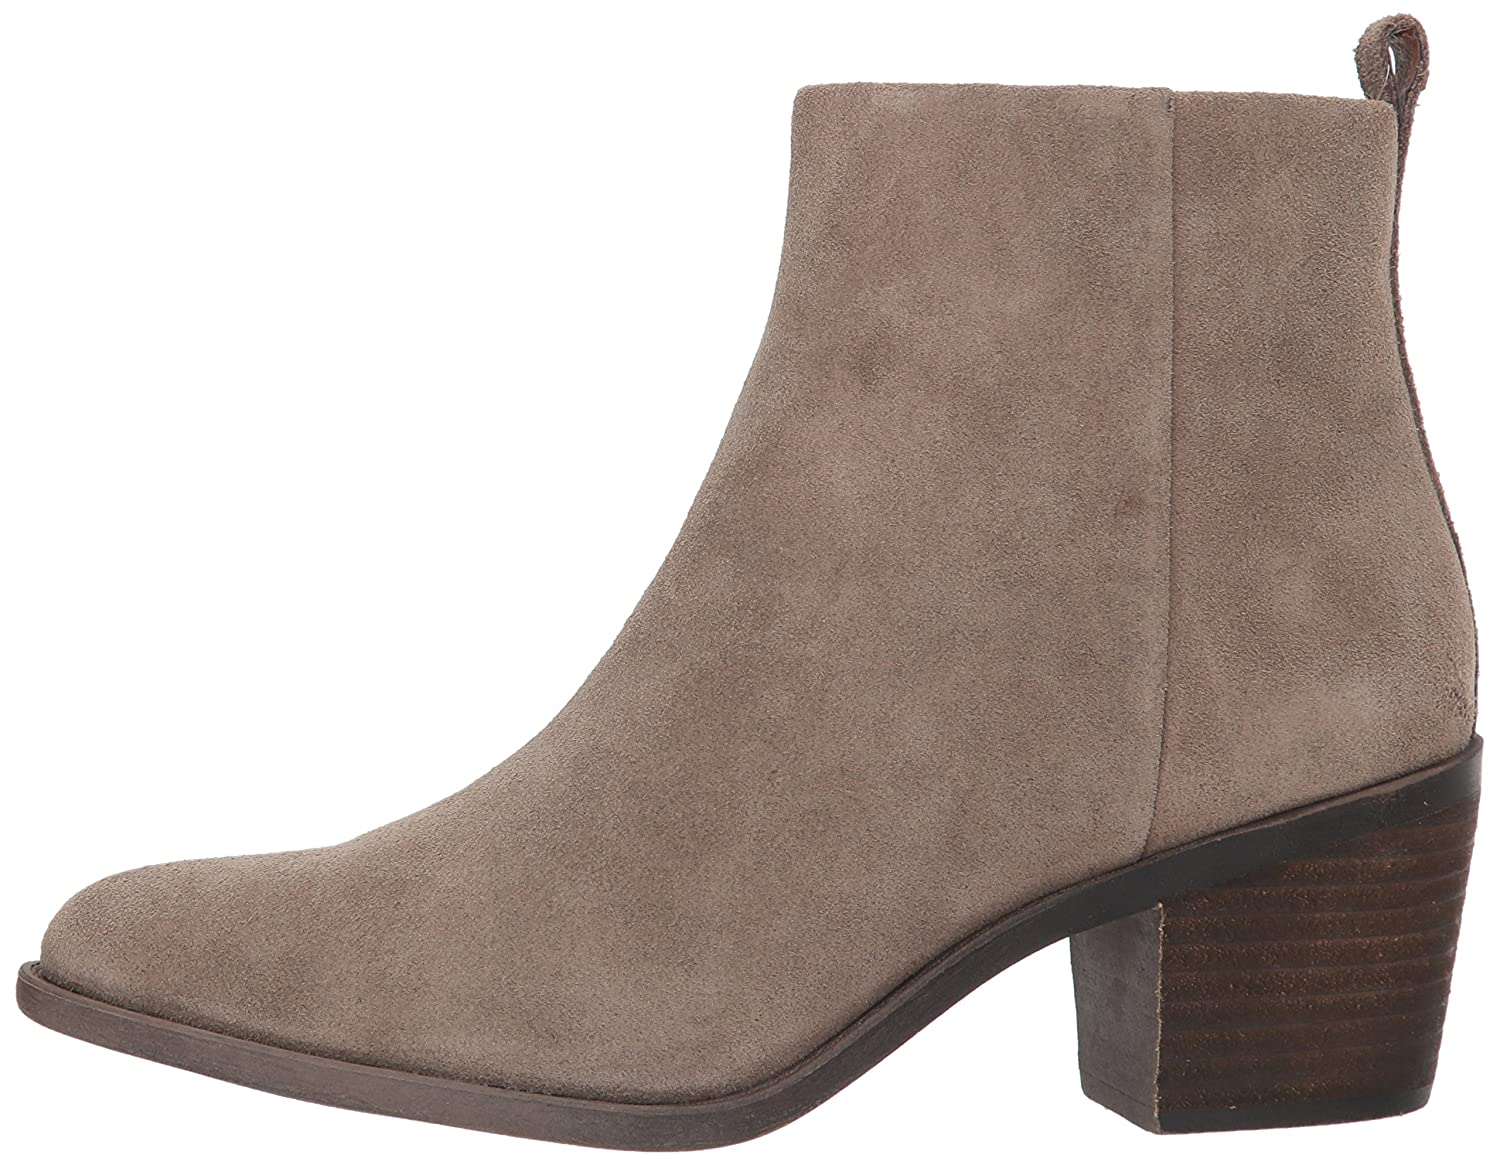 Lucky Boot Brand Women's Natania Ankle Boot Lucky B06ZYT6FK7 9.5 B(M) US|Brindle 78b974